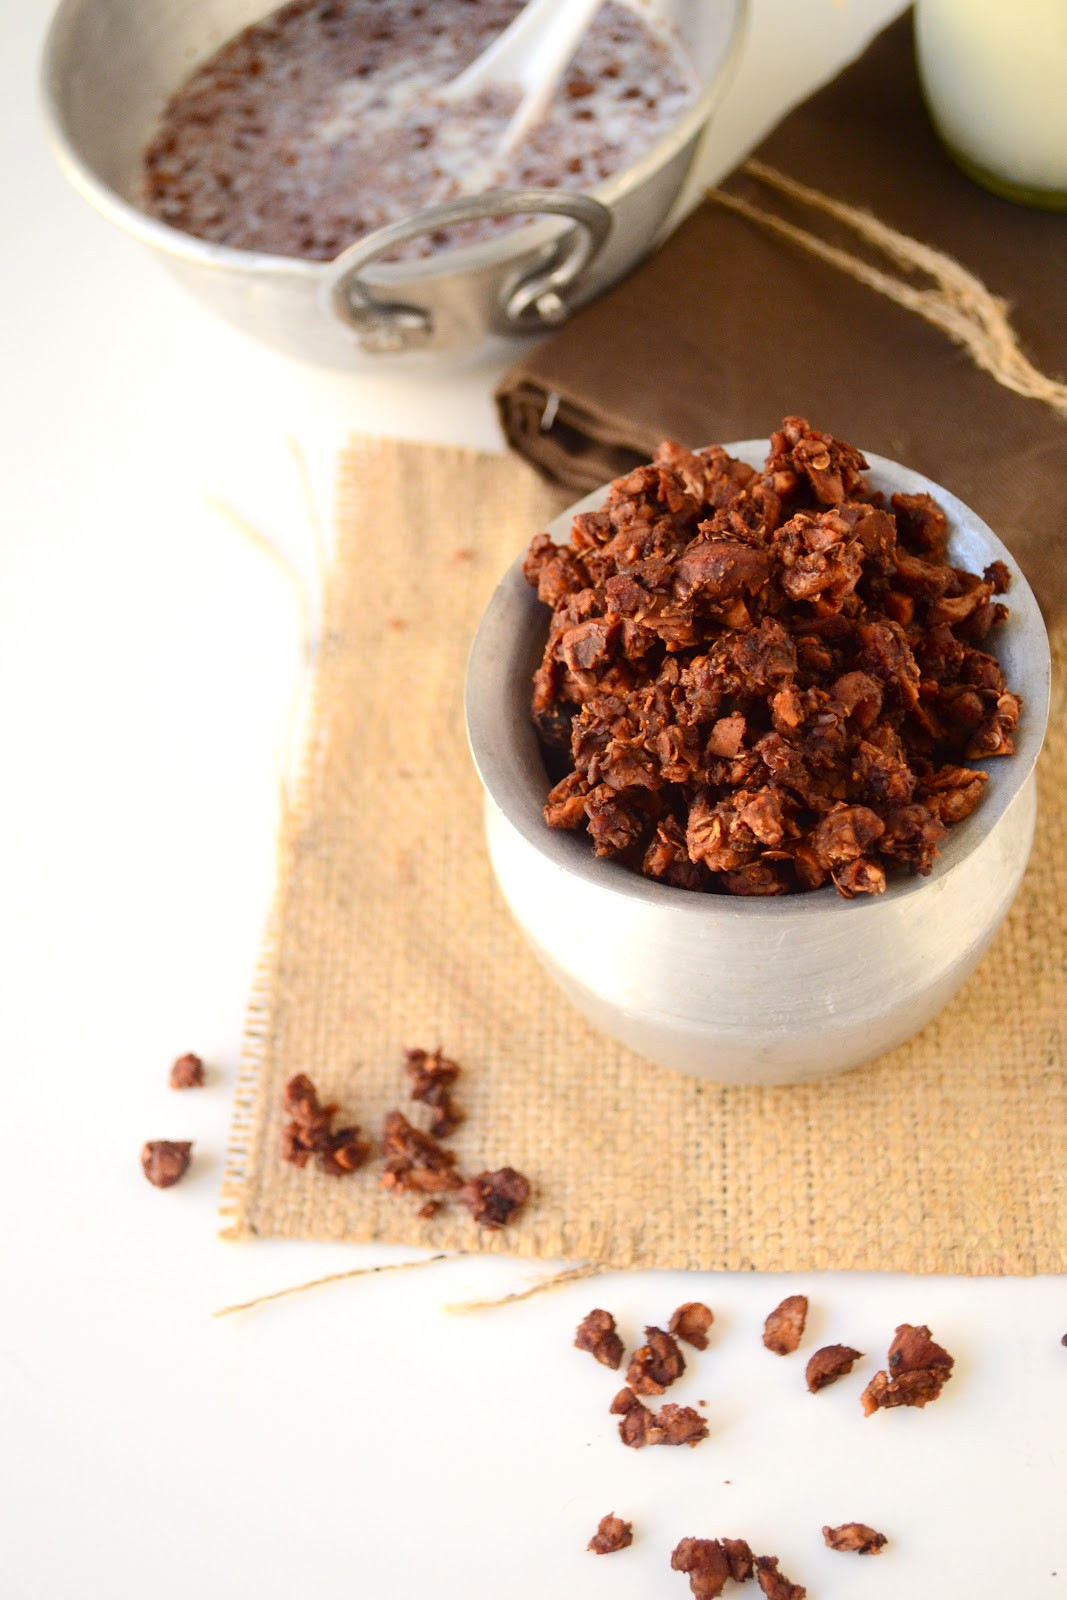 South Beach Diet Desserts  South beach t phase 1 dessert Nutty chocolate granola